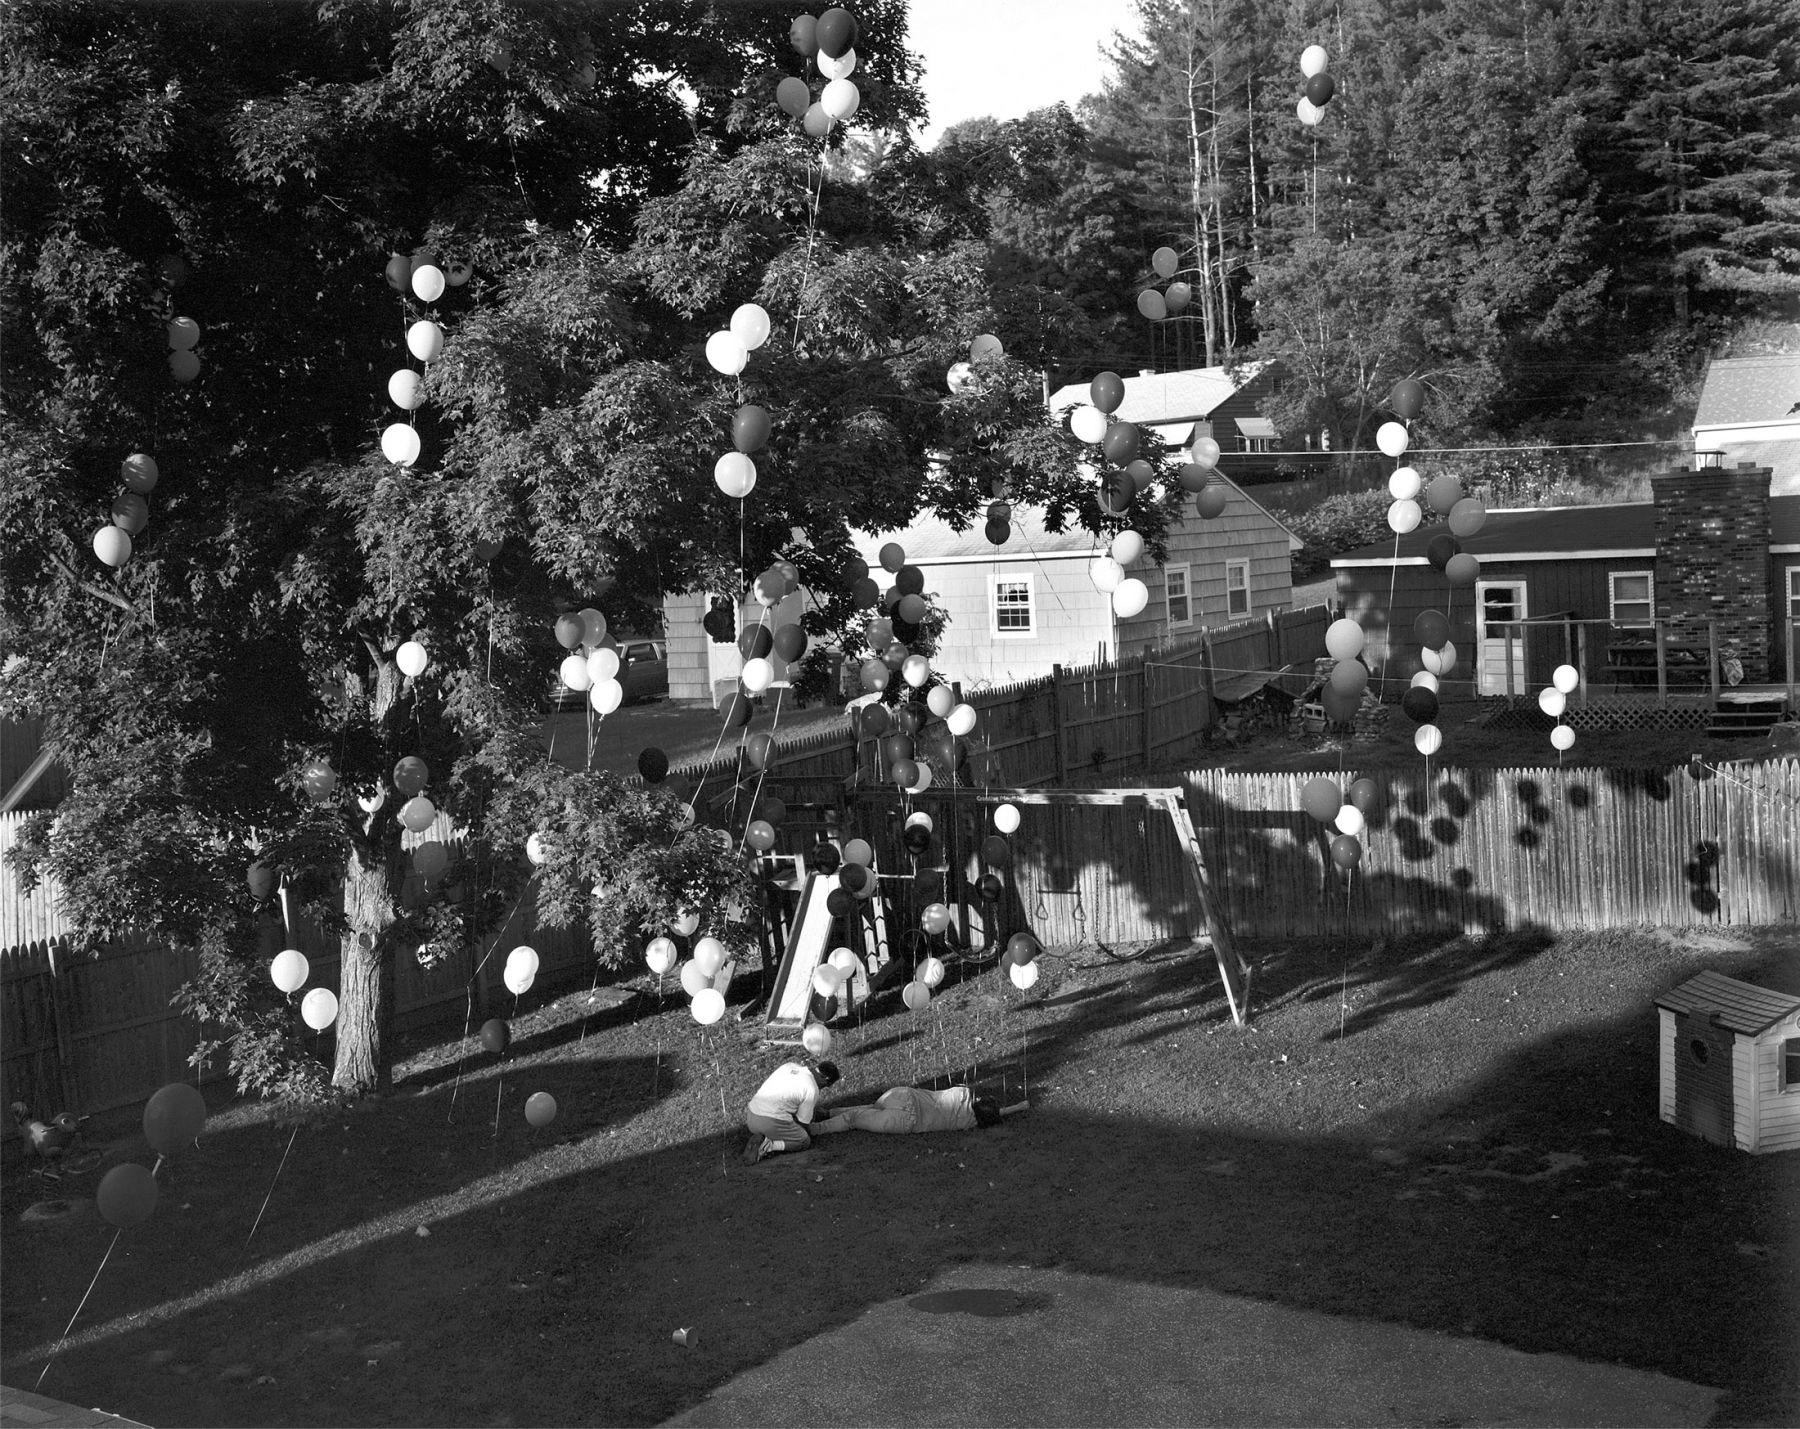 Gregory Crewdson, Untitled (balloons in backyard), 1997